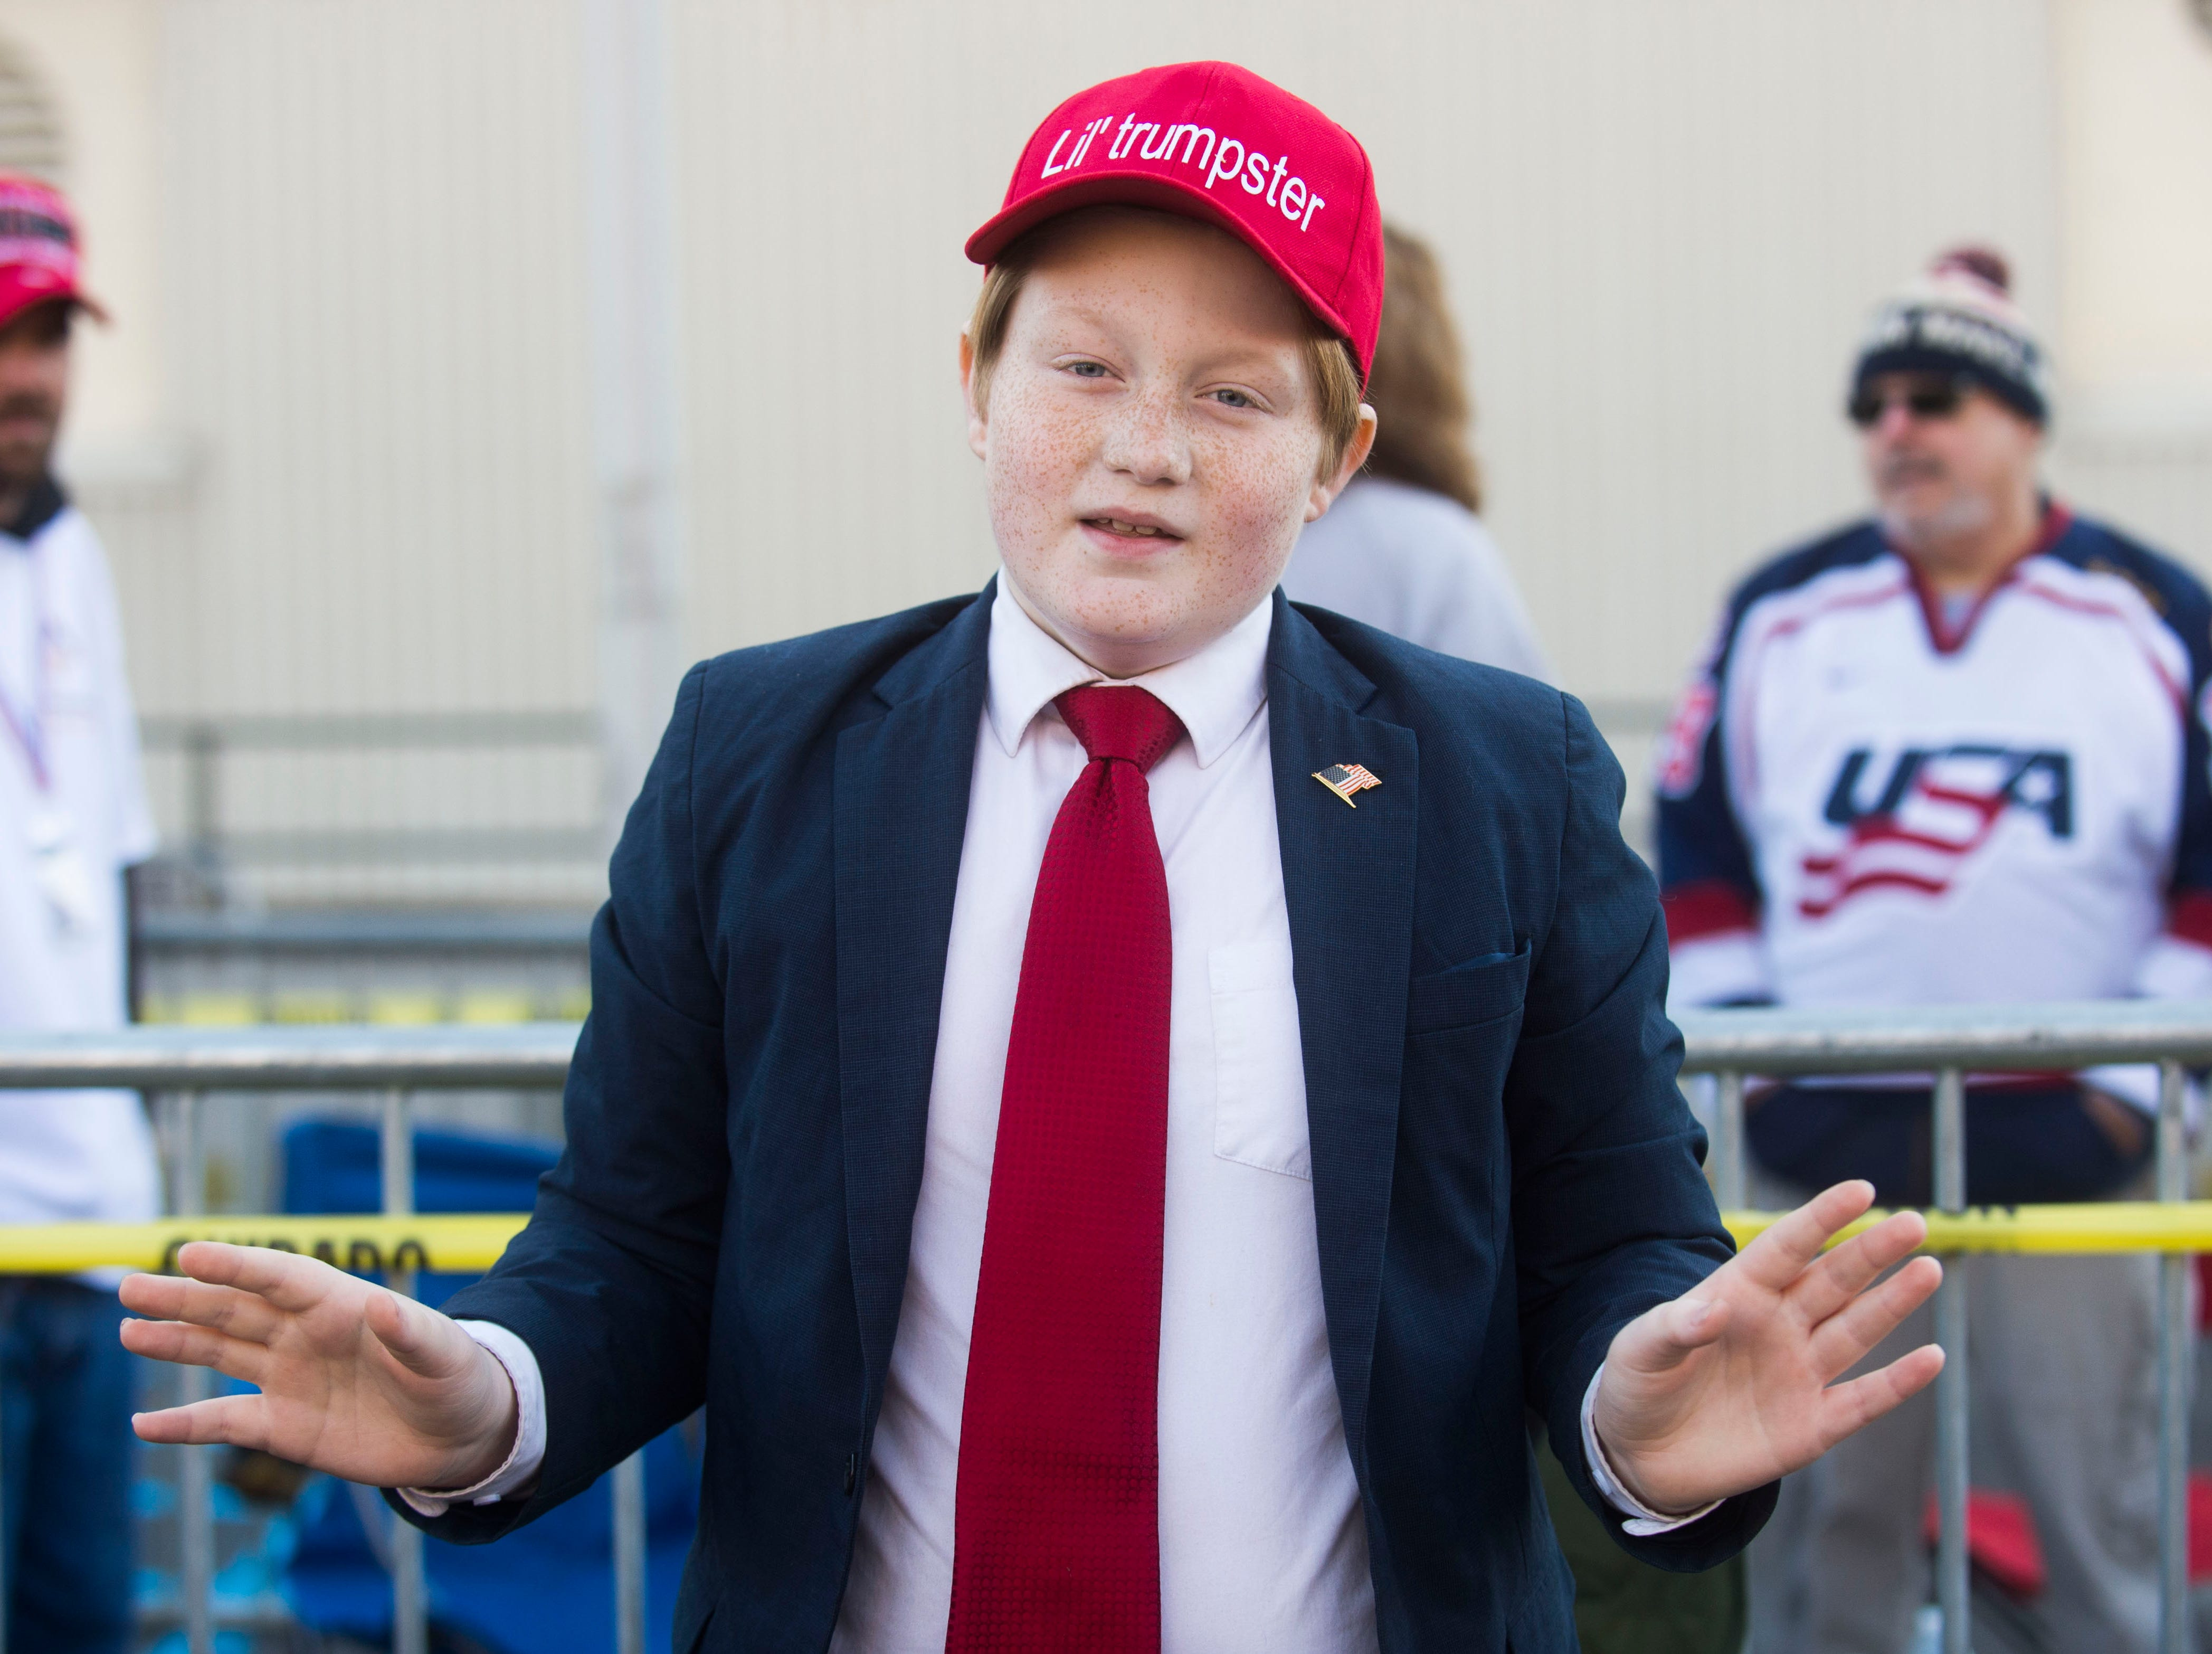 Garrett Bourg, 10, or Rome, Ga. poses like President Trump before a Donald Trump rally in support of U.S. Rep. Marsha Blackburn for the U.S. Senate at McKenzie Arena in Chattanooga, Sunday, Nov. 4, 2018.